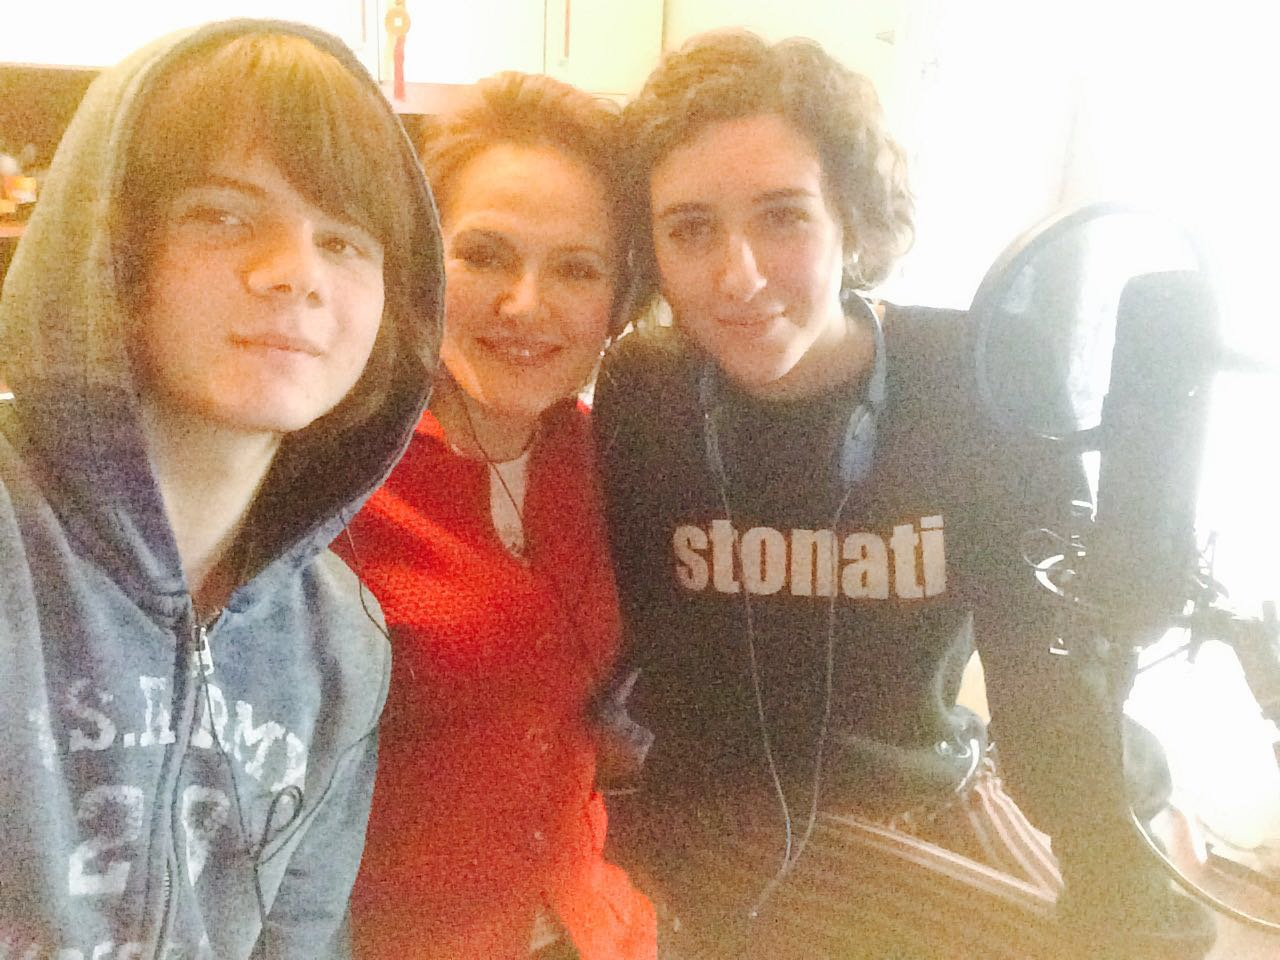 Mario, Ludovica and Paola at Radioimmaginaria Spring 2016.1